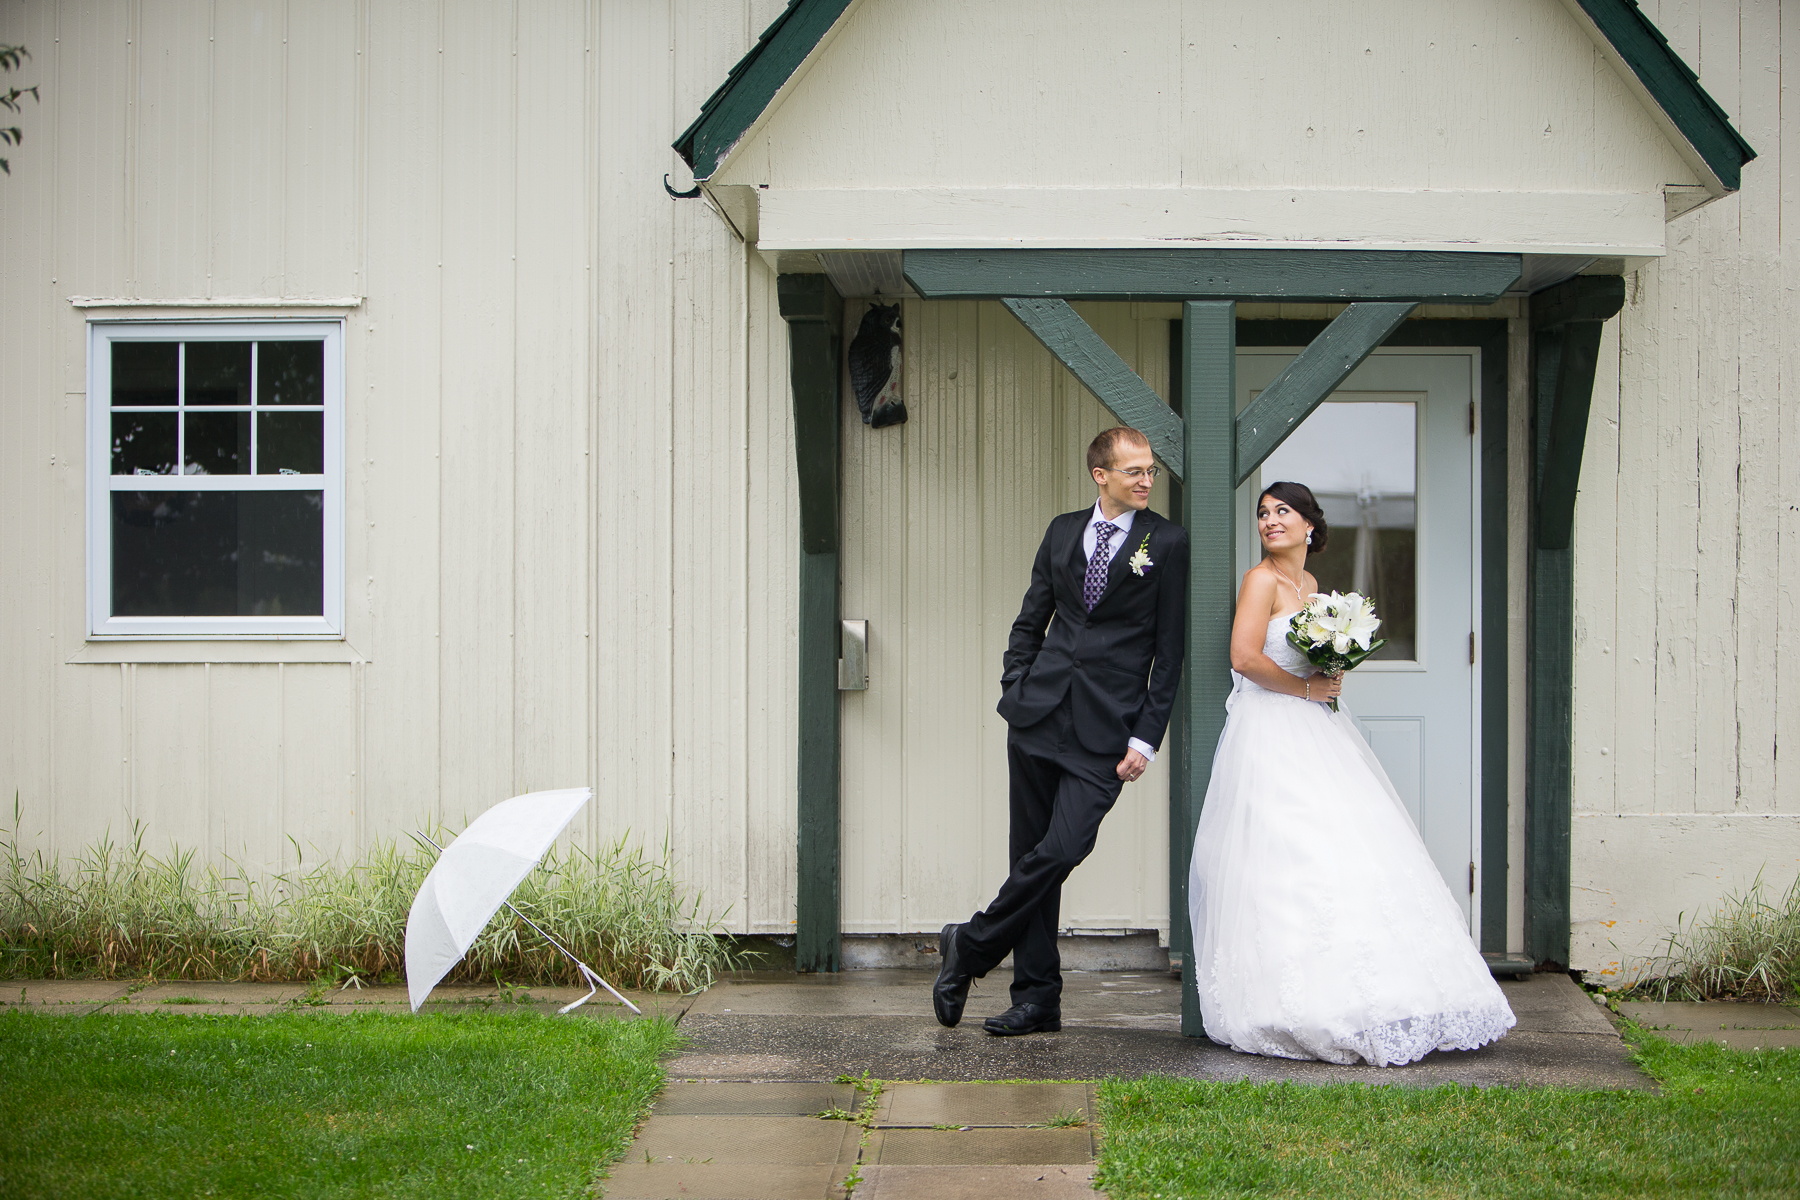 stephane-lemieux-photographe-mariage-montreal-portfolio-159-barn-couple-flowers-holding-looking-each-other-smiling-standing-umbrella-wedding